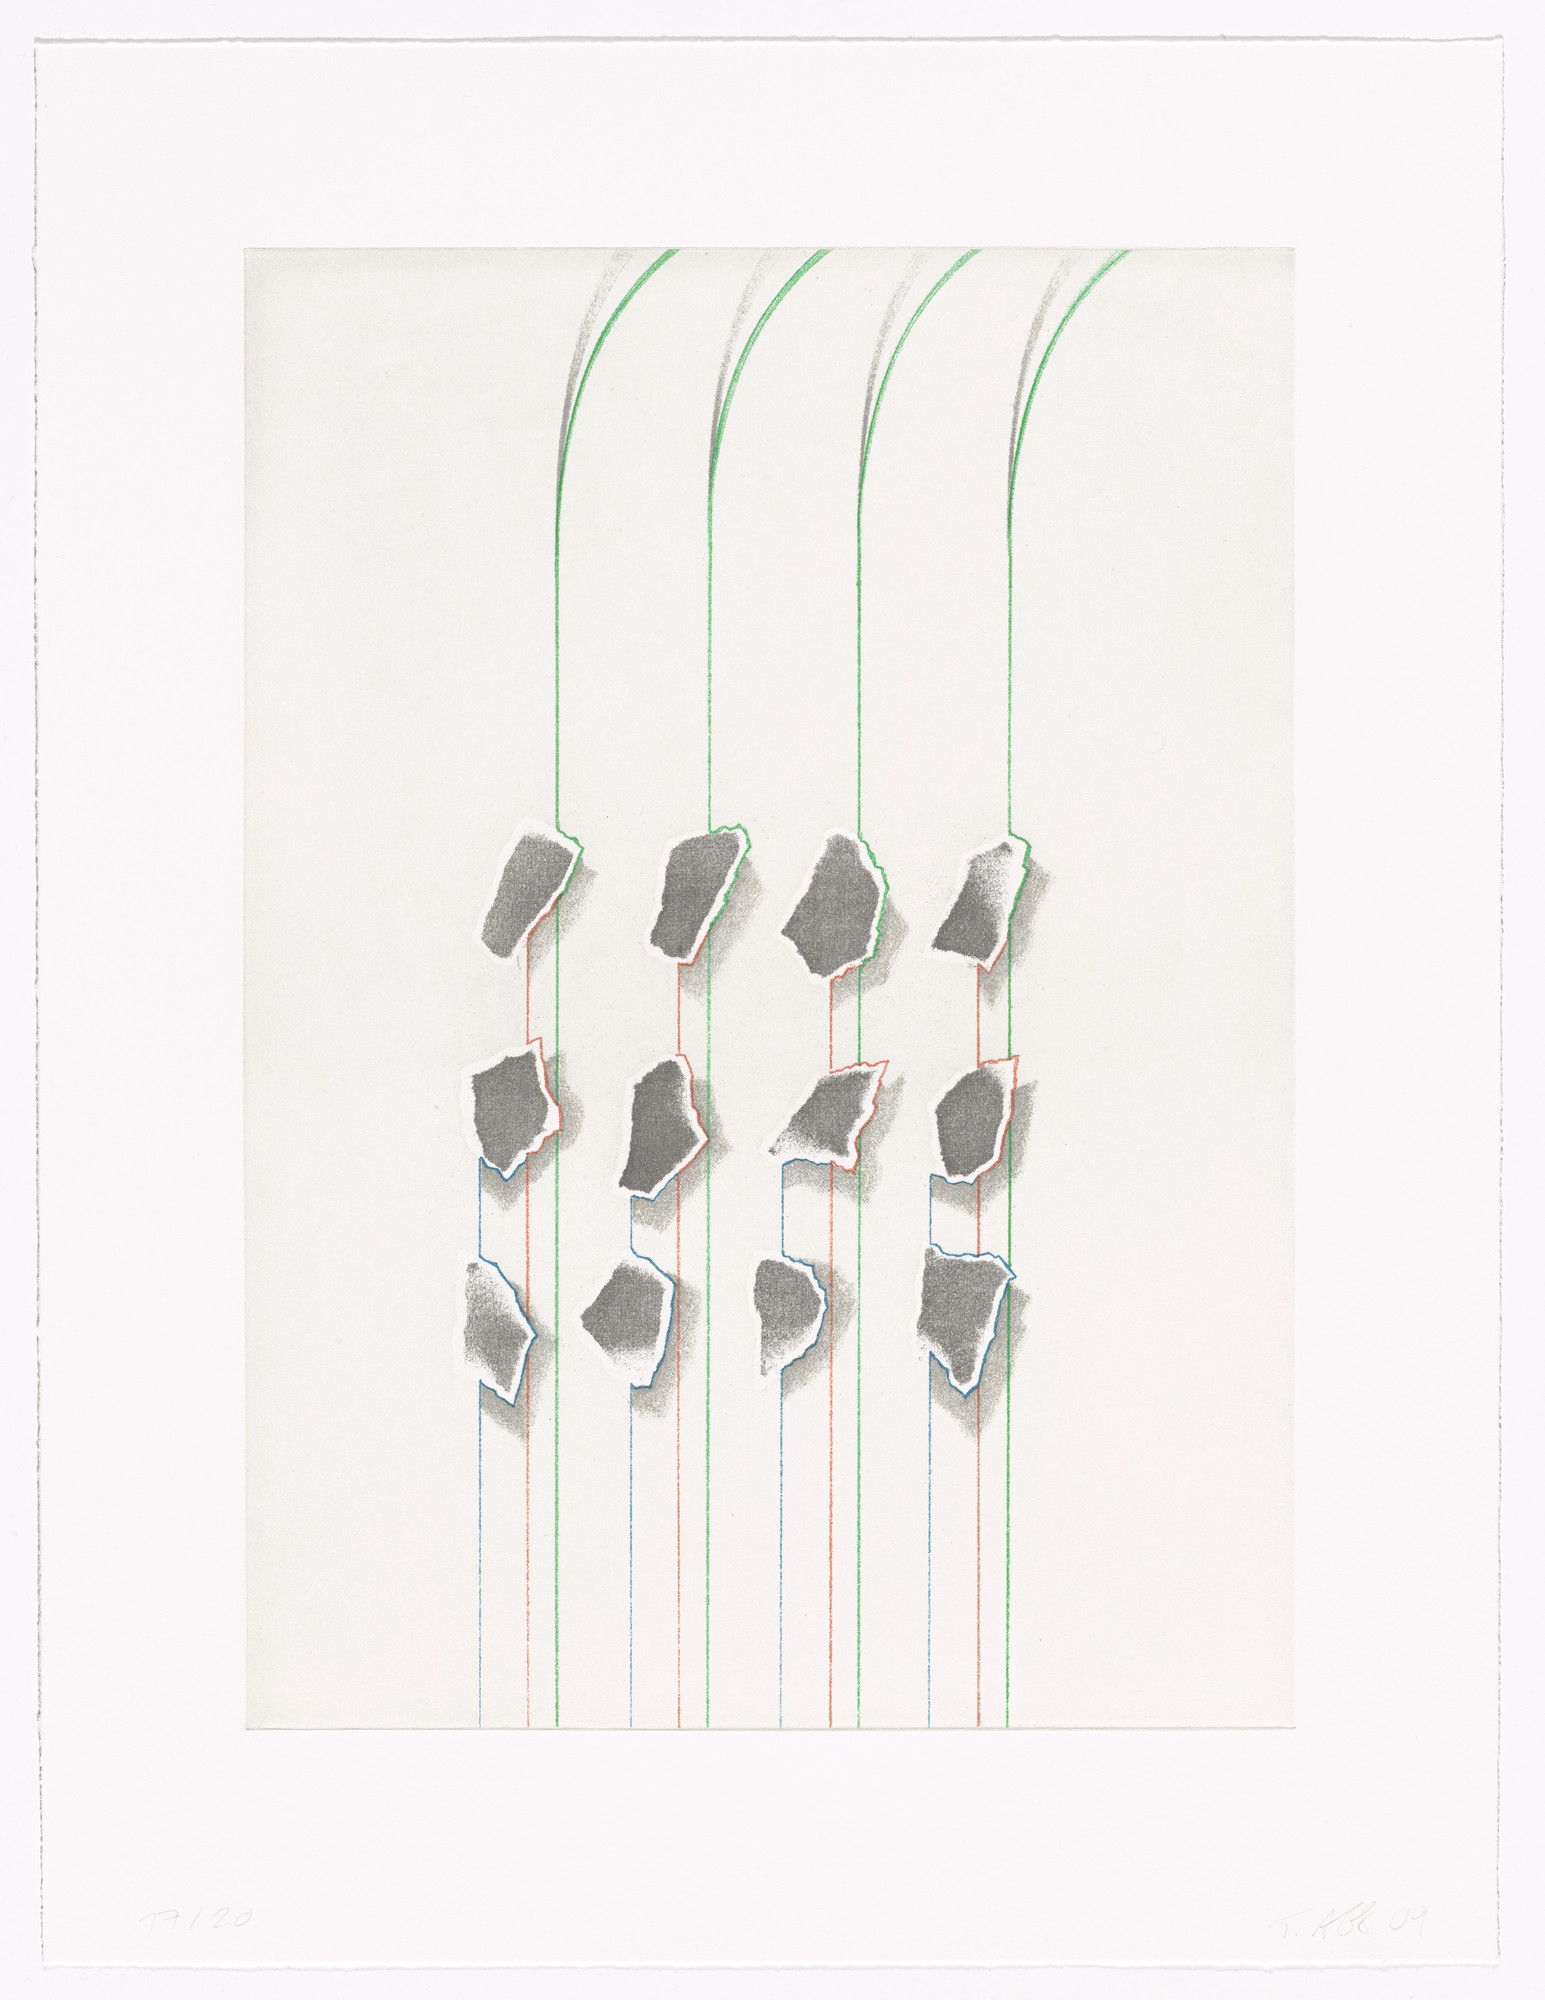 Tomma Abts. Untitled (12 bits). 2009